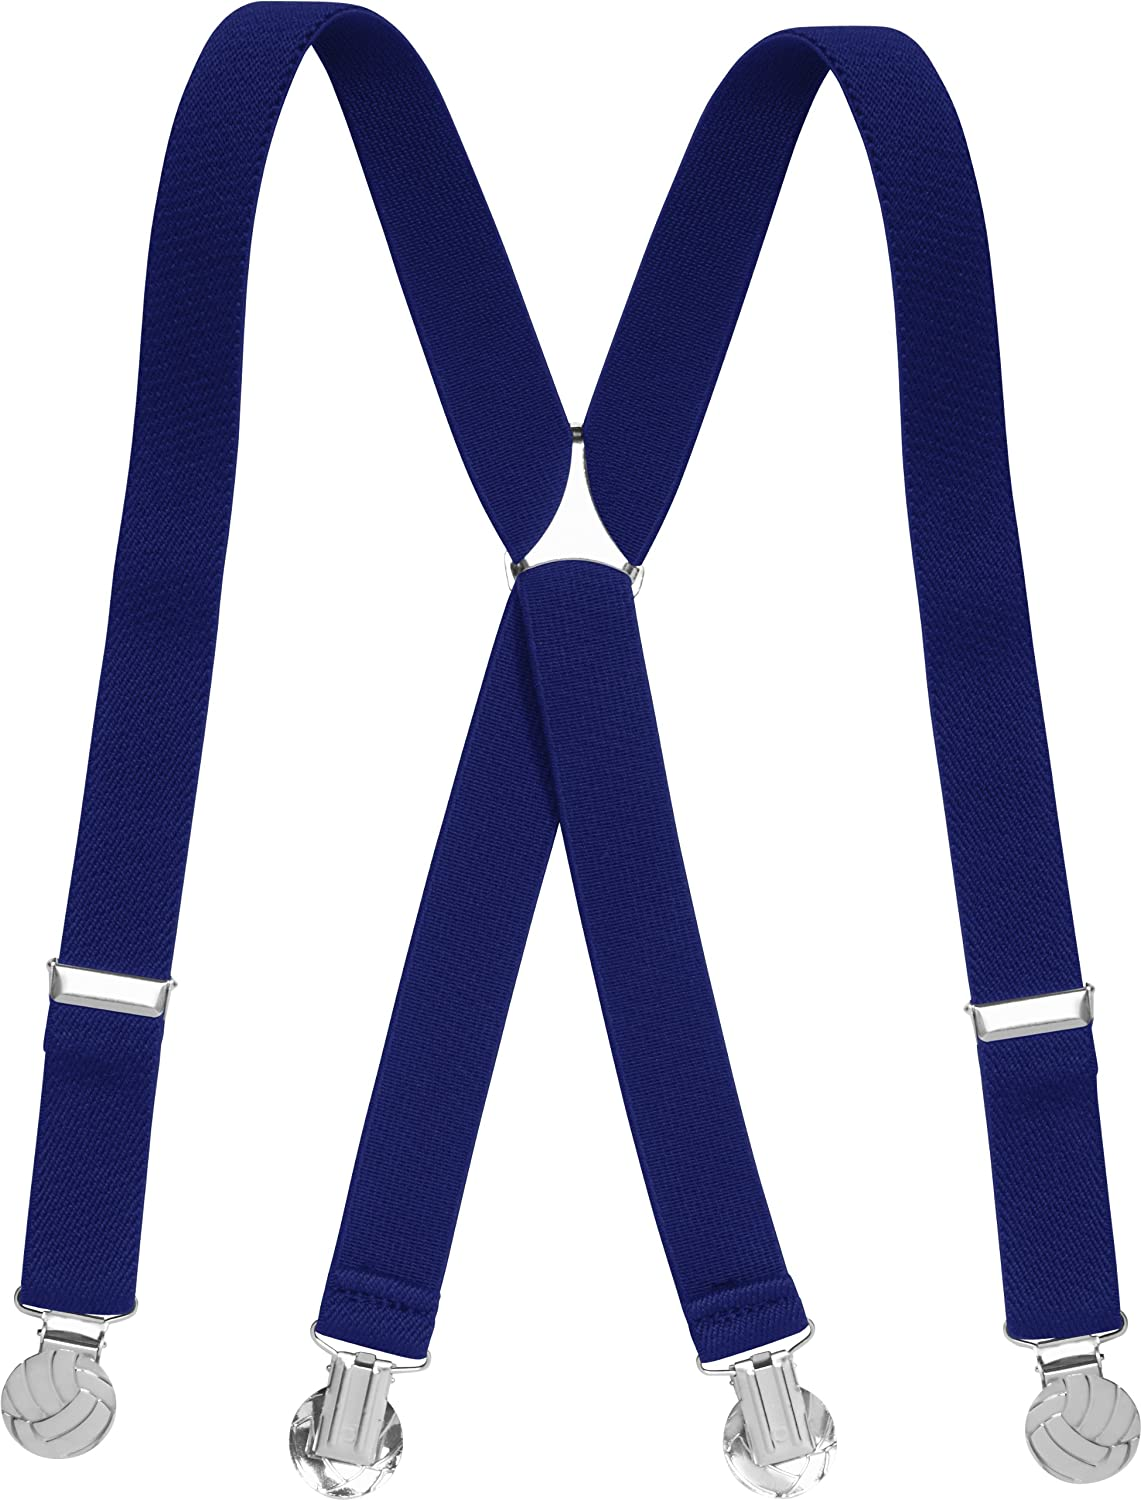 Playshoes BoyS Kids Fully Adjustable Elasticated Suspenders with Football Clips Braces